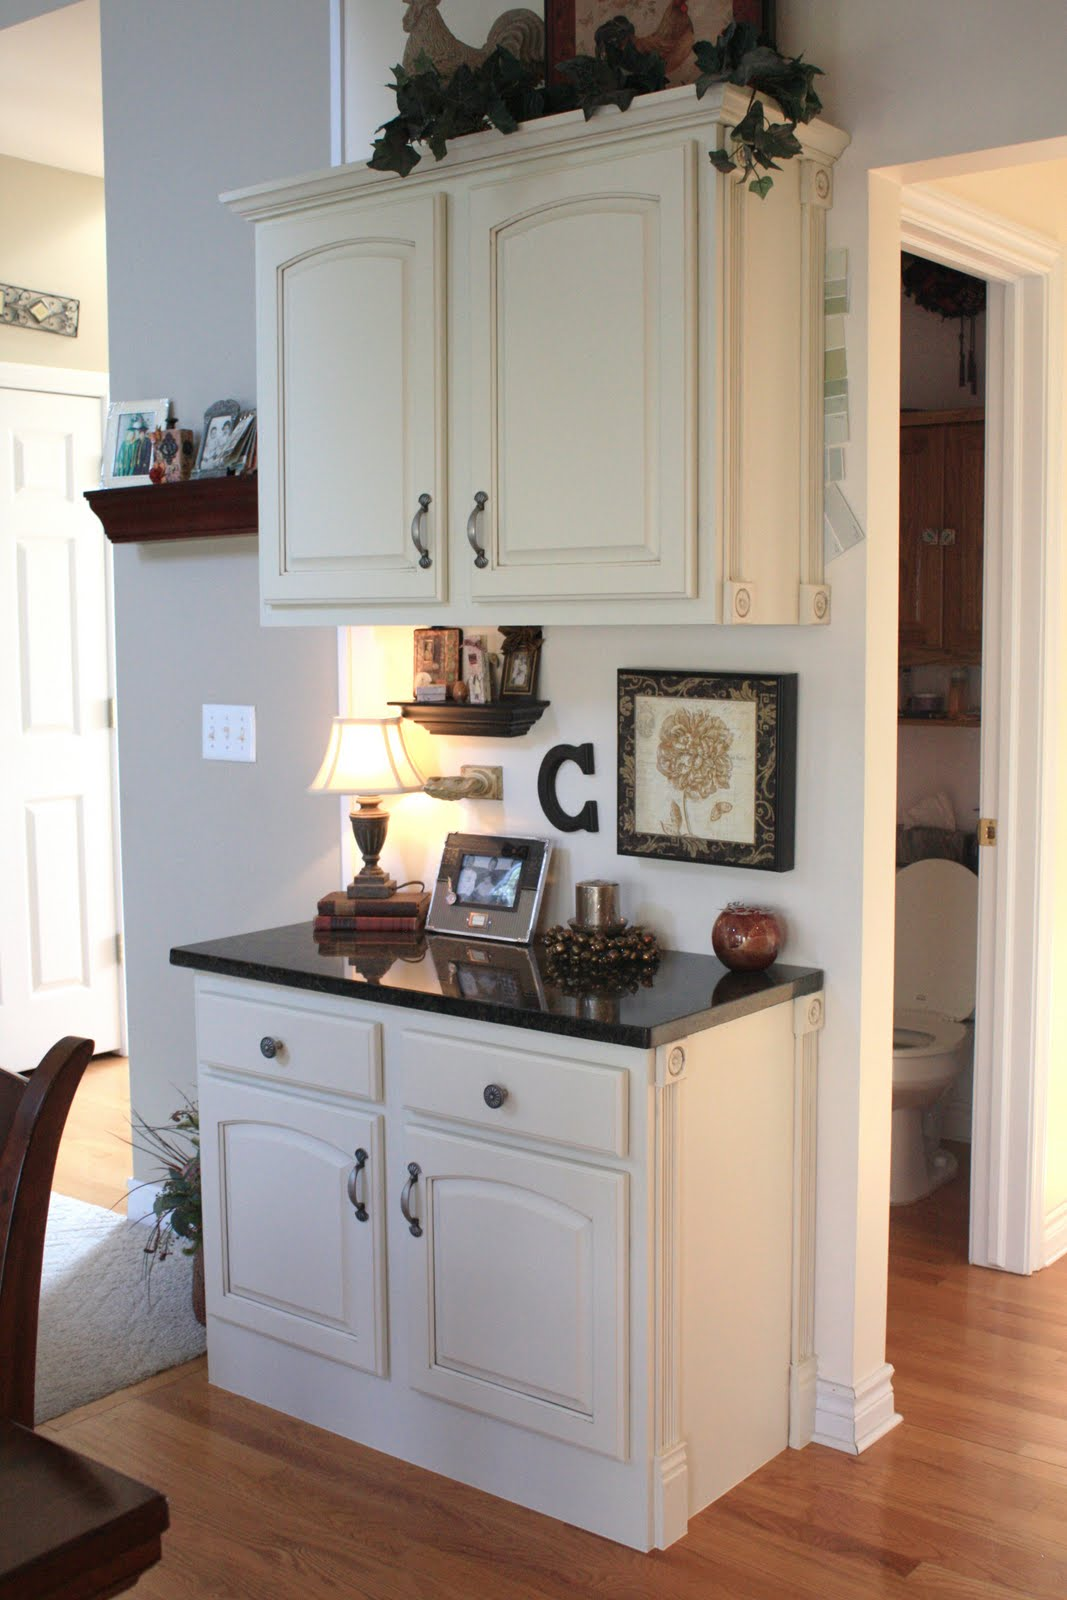 Kitchen cabinet crown molding ideas for Kitchen cabinets crown molding ideas